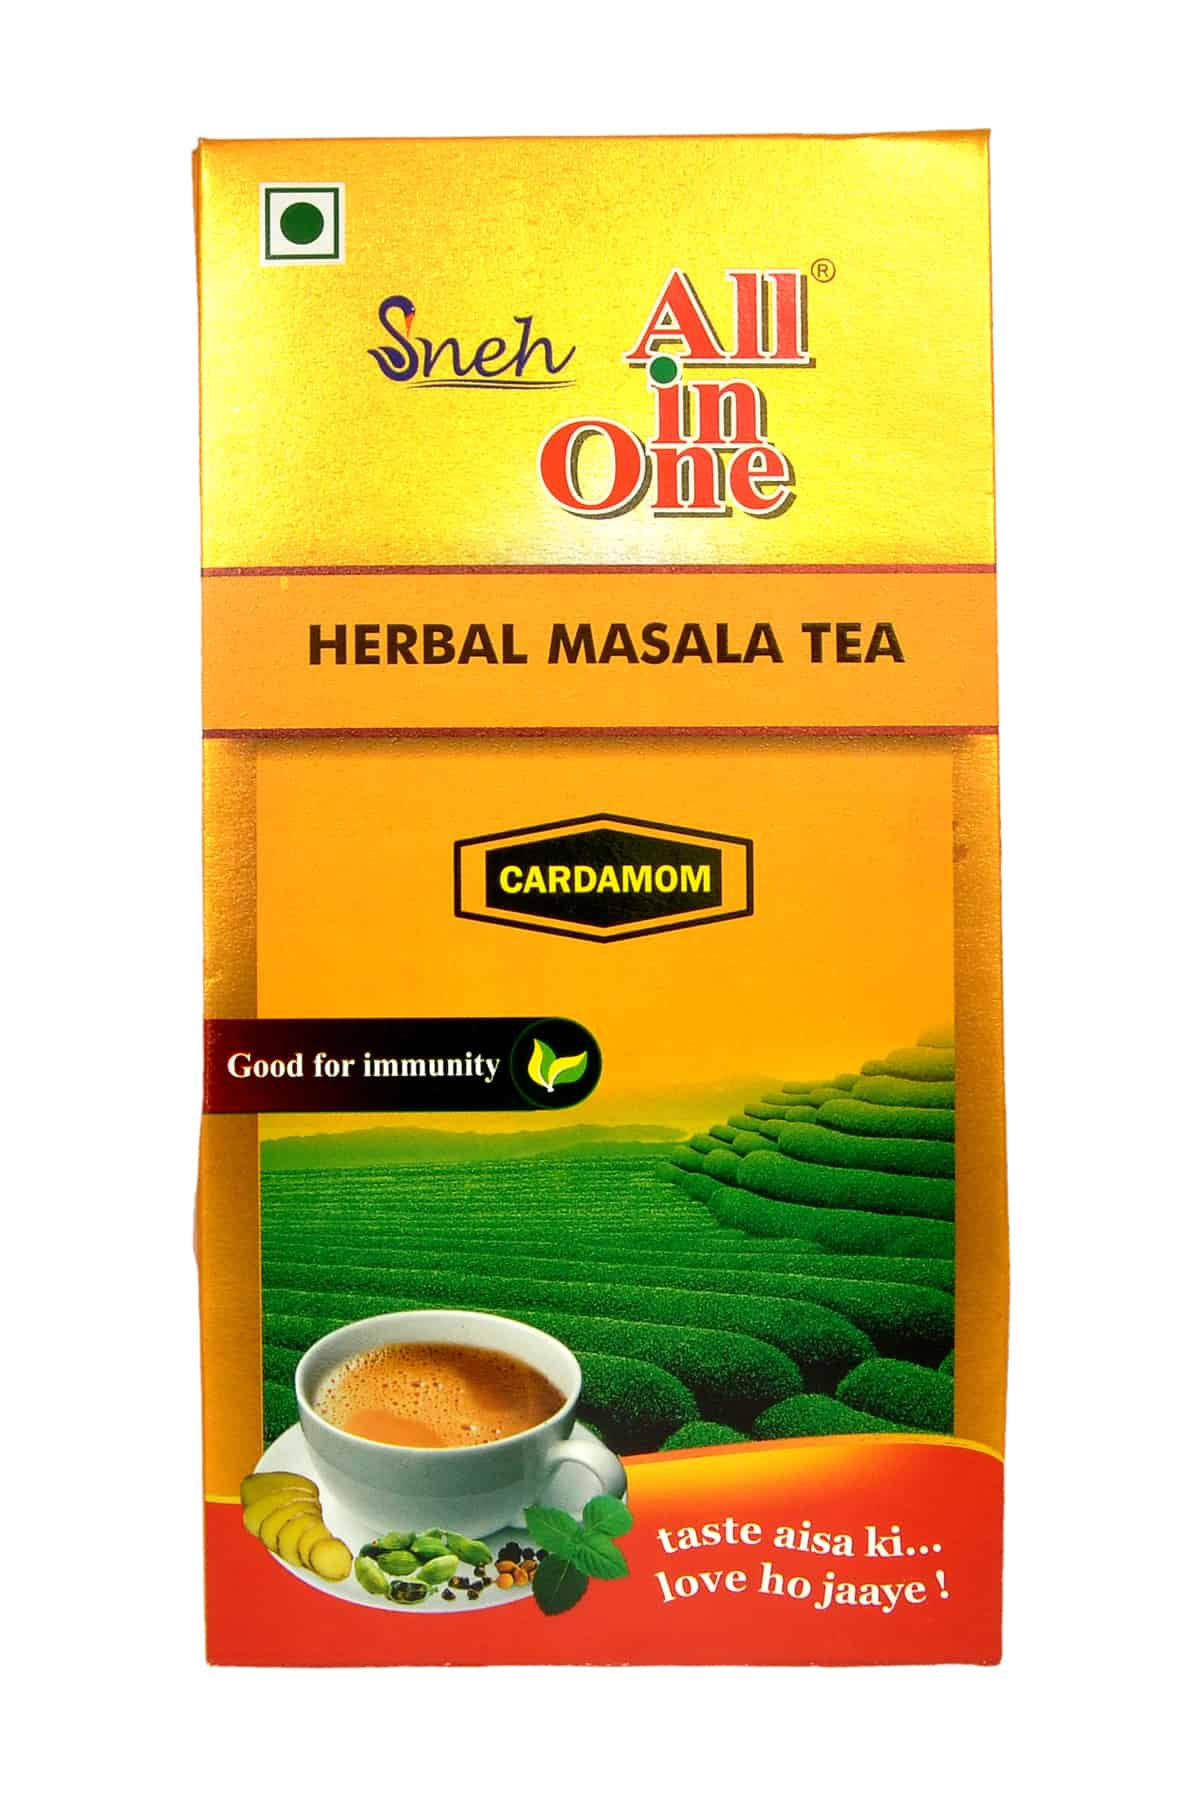 SNEH- Herbal Masala Tea (Pack of 8)